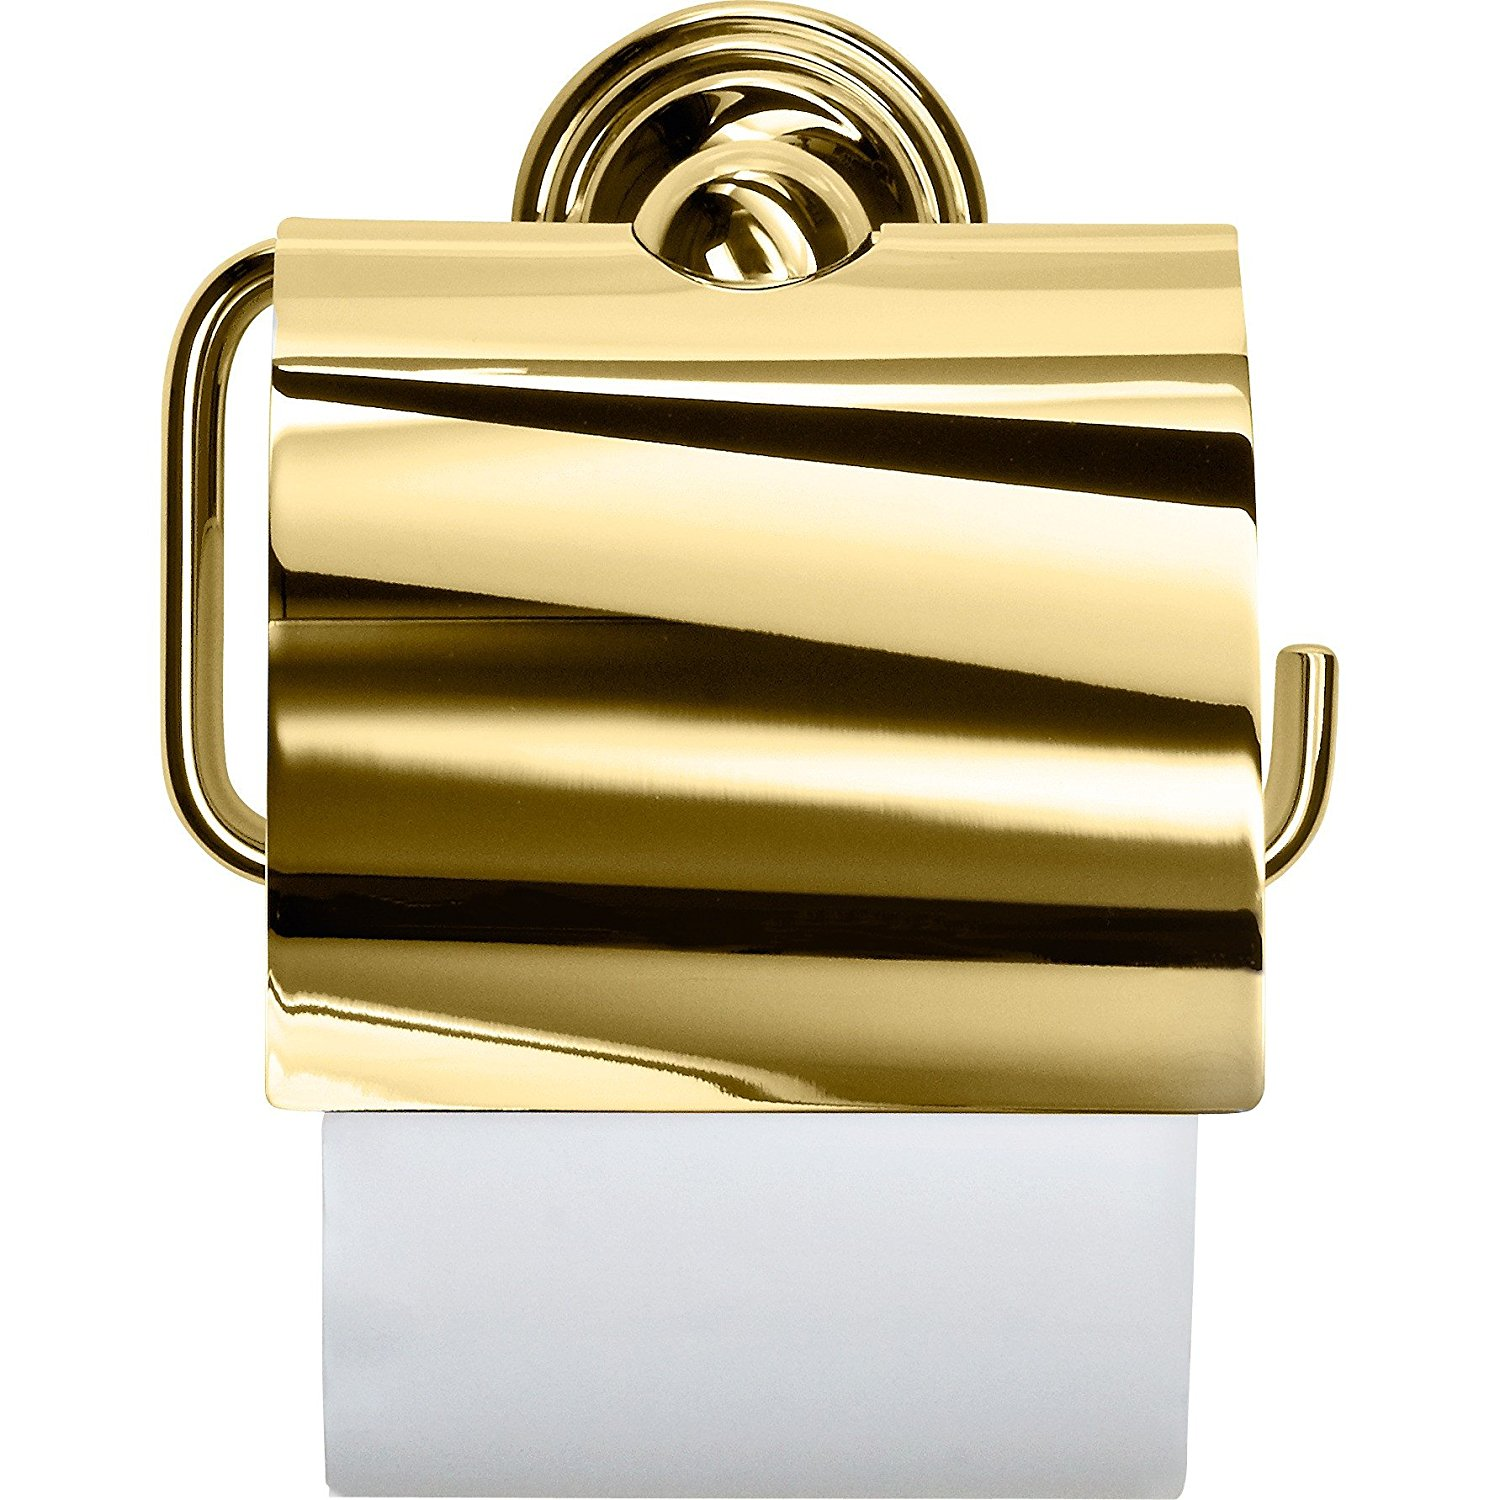 Cheap Gold Wall Paper, find Gold Wall Paper deals on line at Alibaba.com